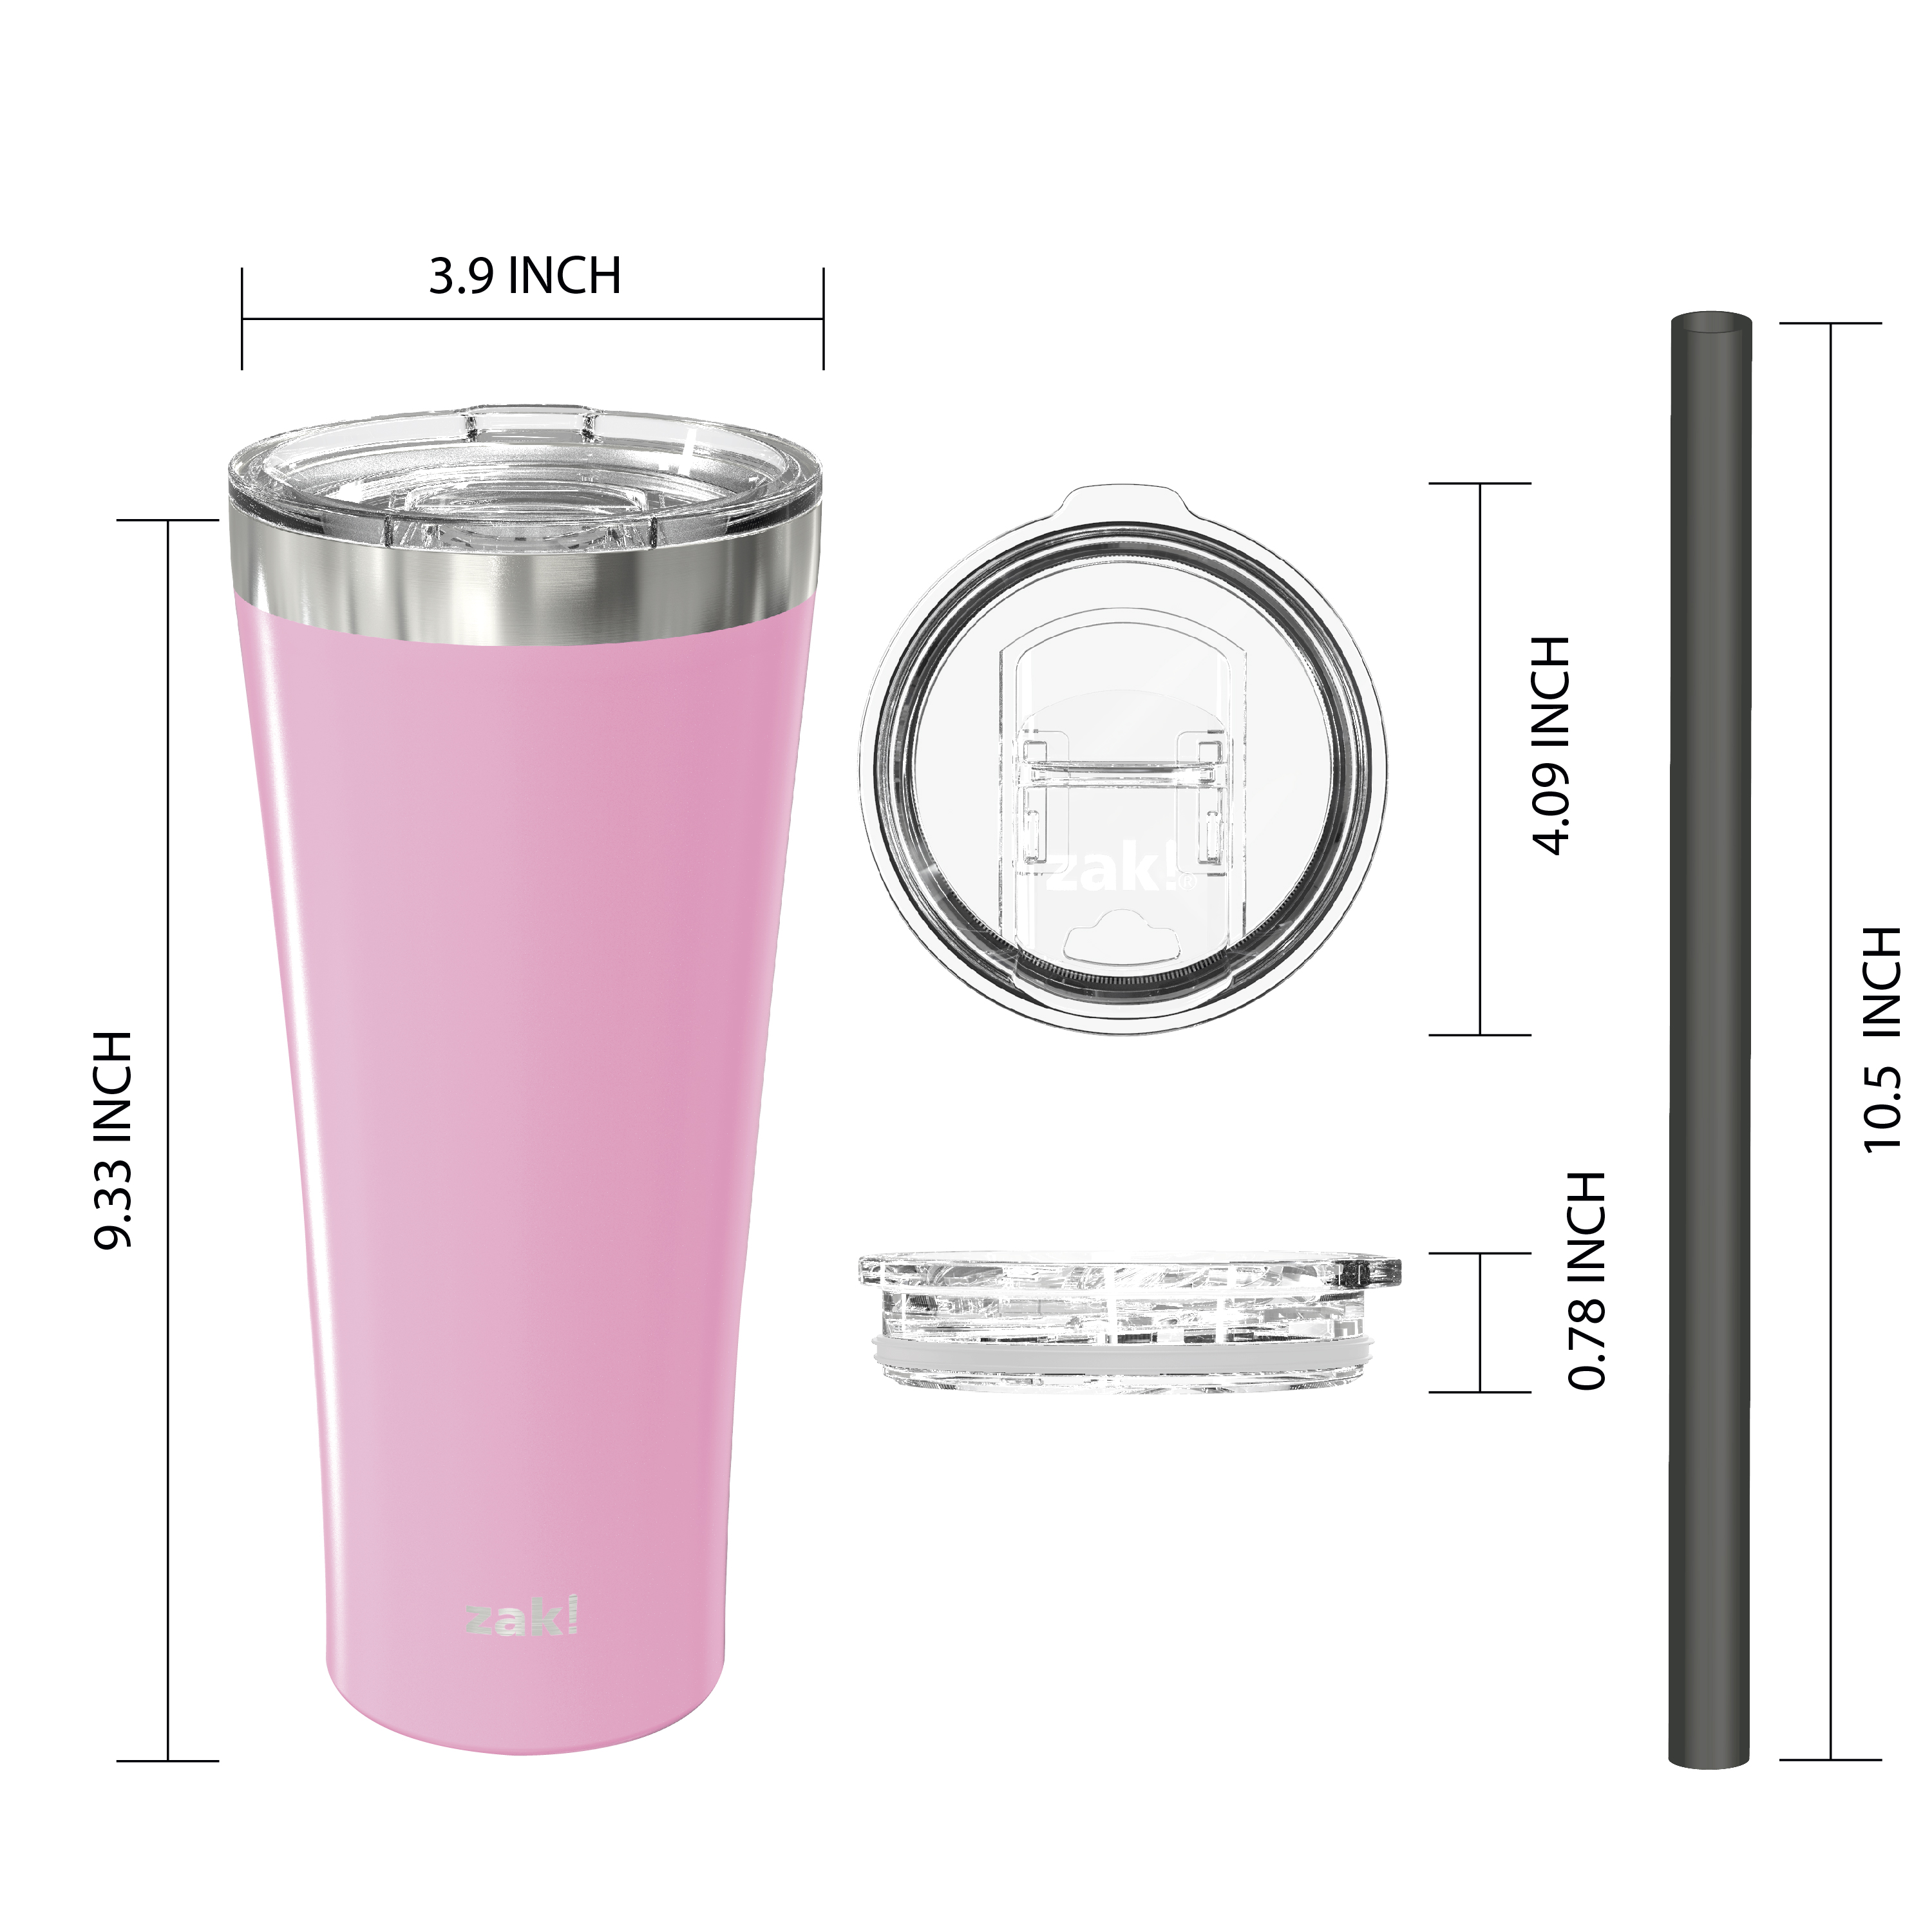 Alpine 30 ounce Stainless Steel Vacuum Insulated Tumbler with Straw, Lilac slideshow image 4